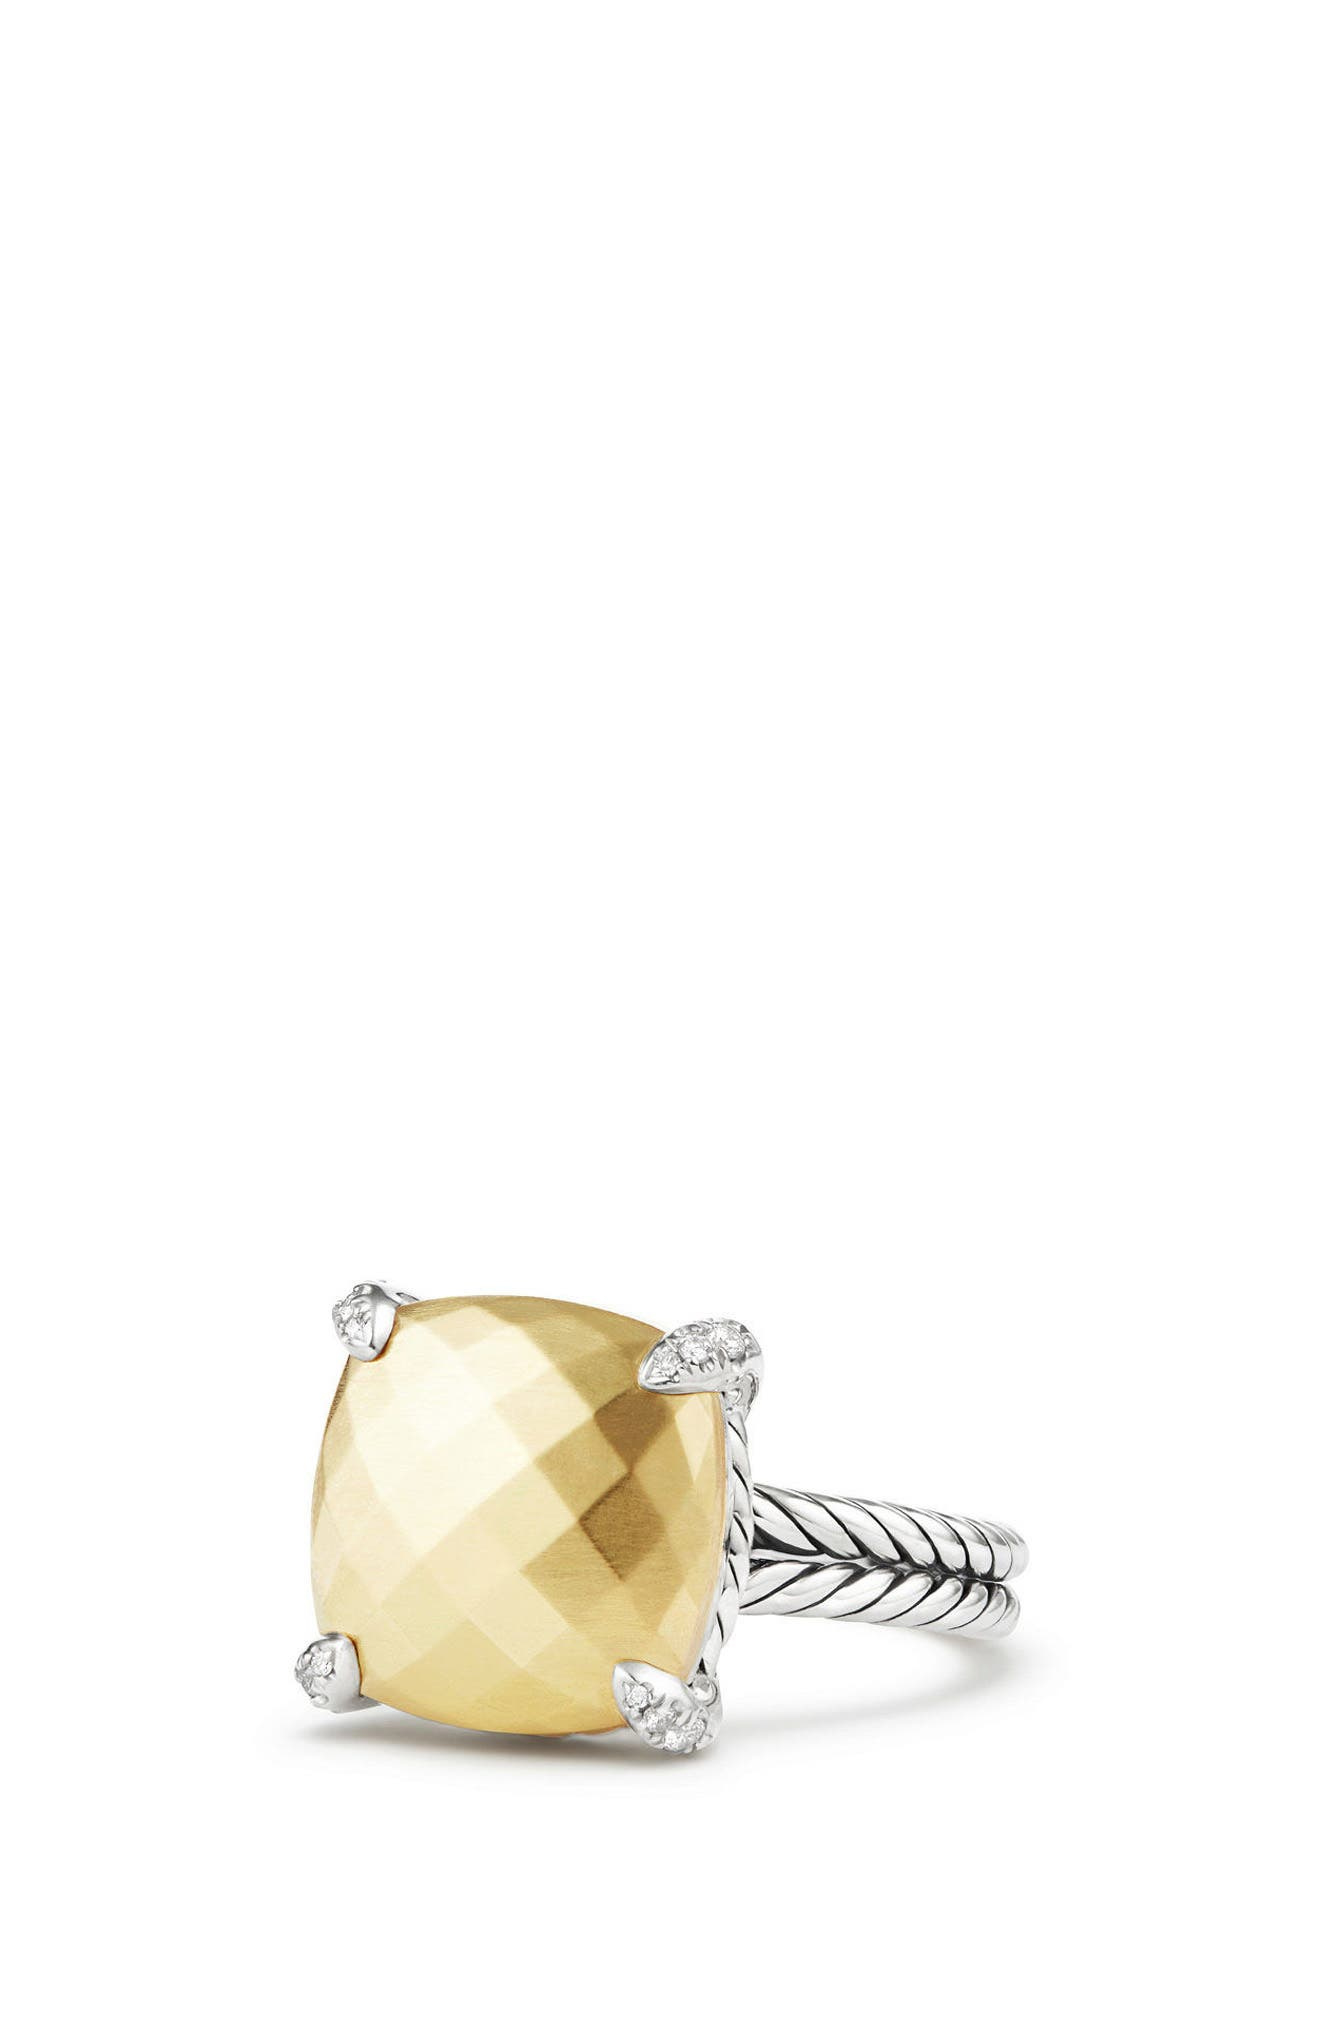 Main Image - David Yurman Chatelaine Ring with 18K Gold and Diamonds